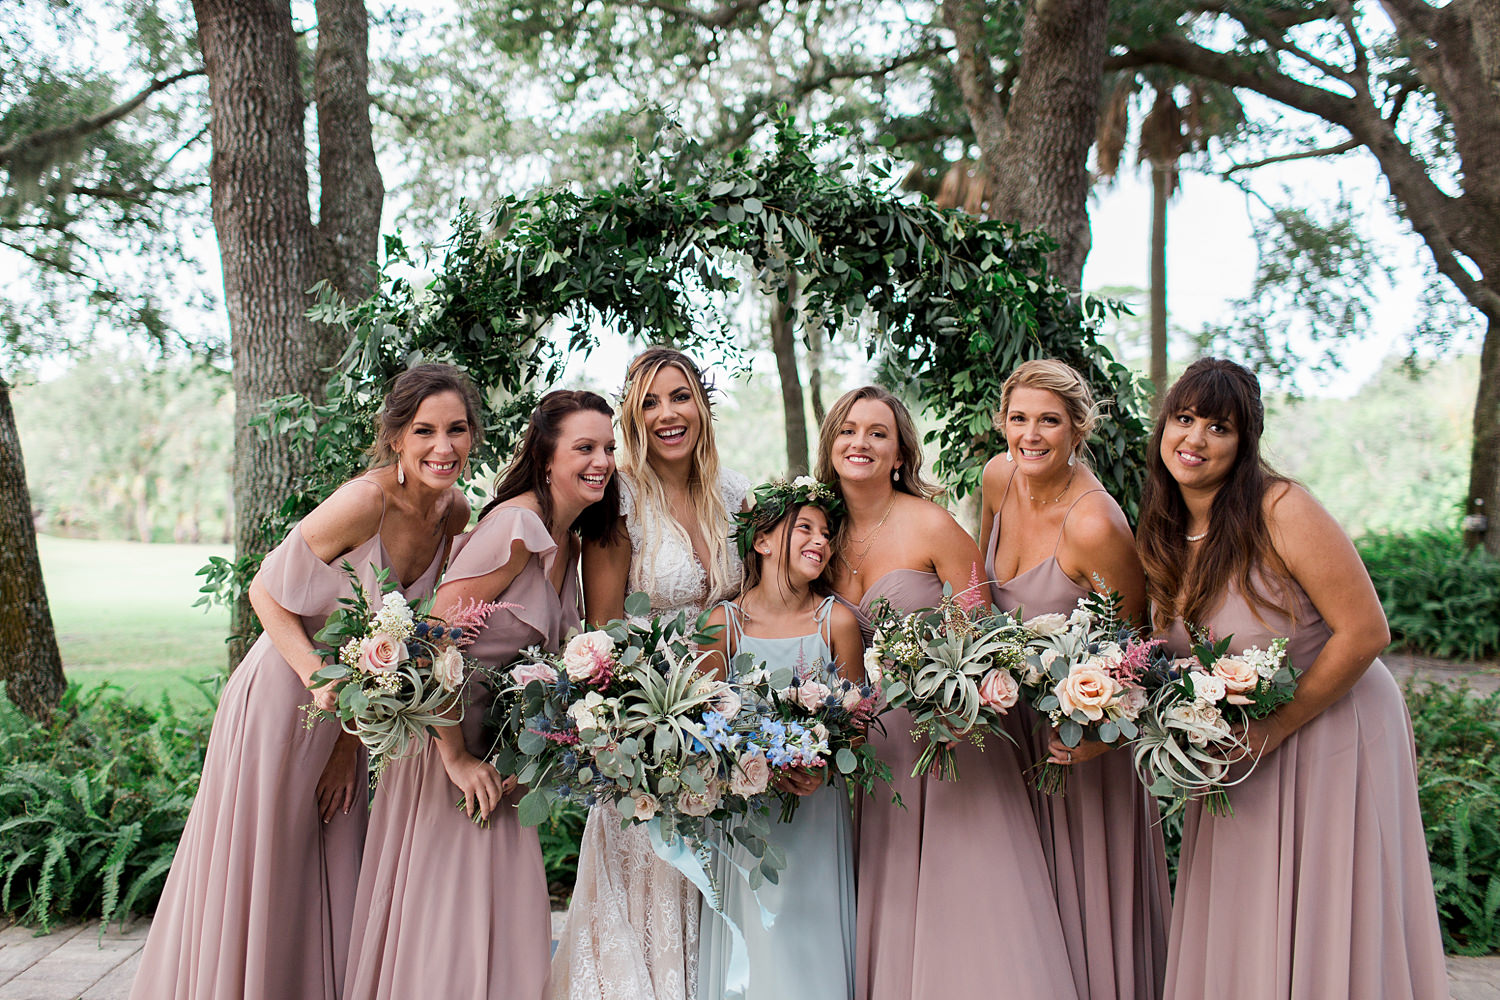 Bride and bridesmaids holding bouquets in front of a greenery infinity arch.